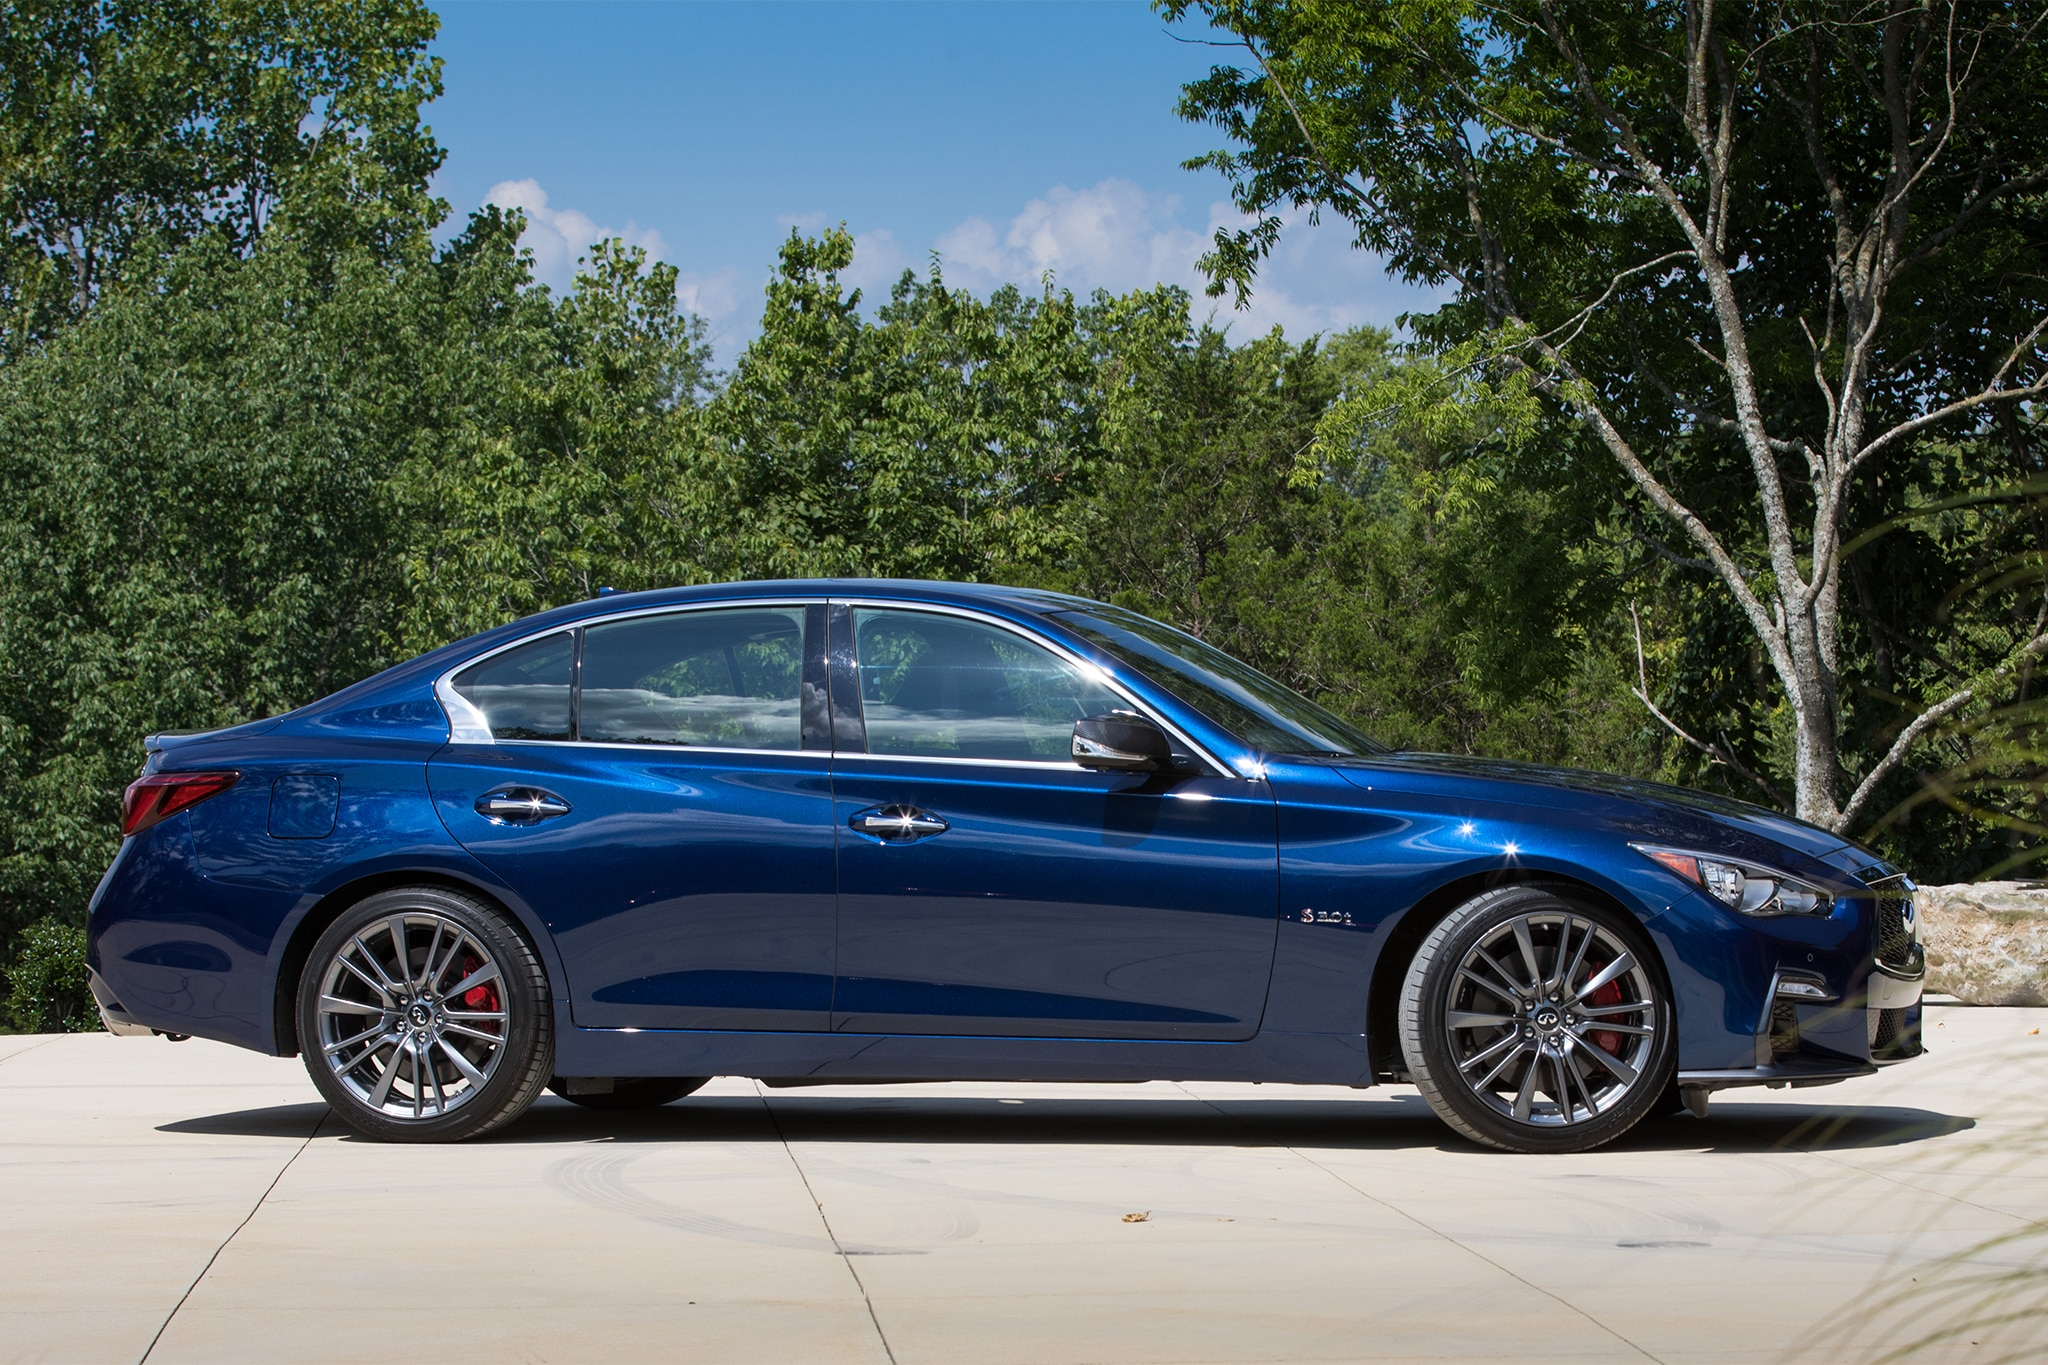 infiniti q50 black coupe. infiniti now offers an optional 16speaker stereo from boseu0027s highfidelity performance series and it sounds wonderfully clear bright q50 black coupe a